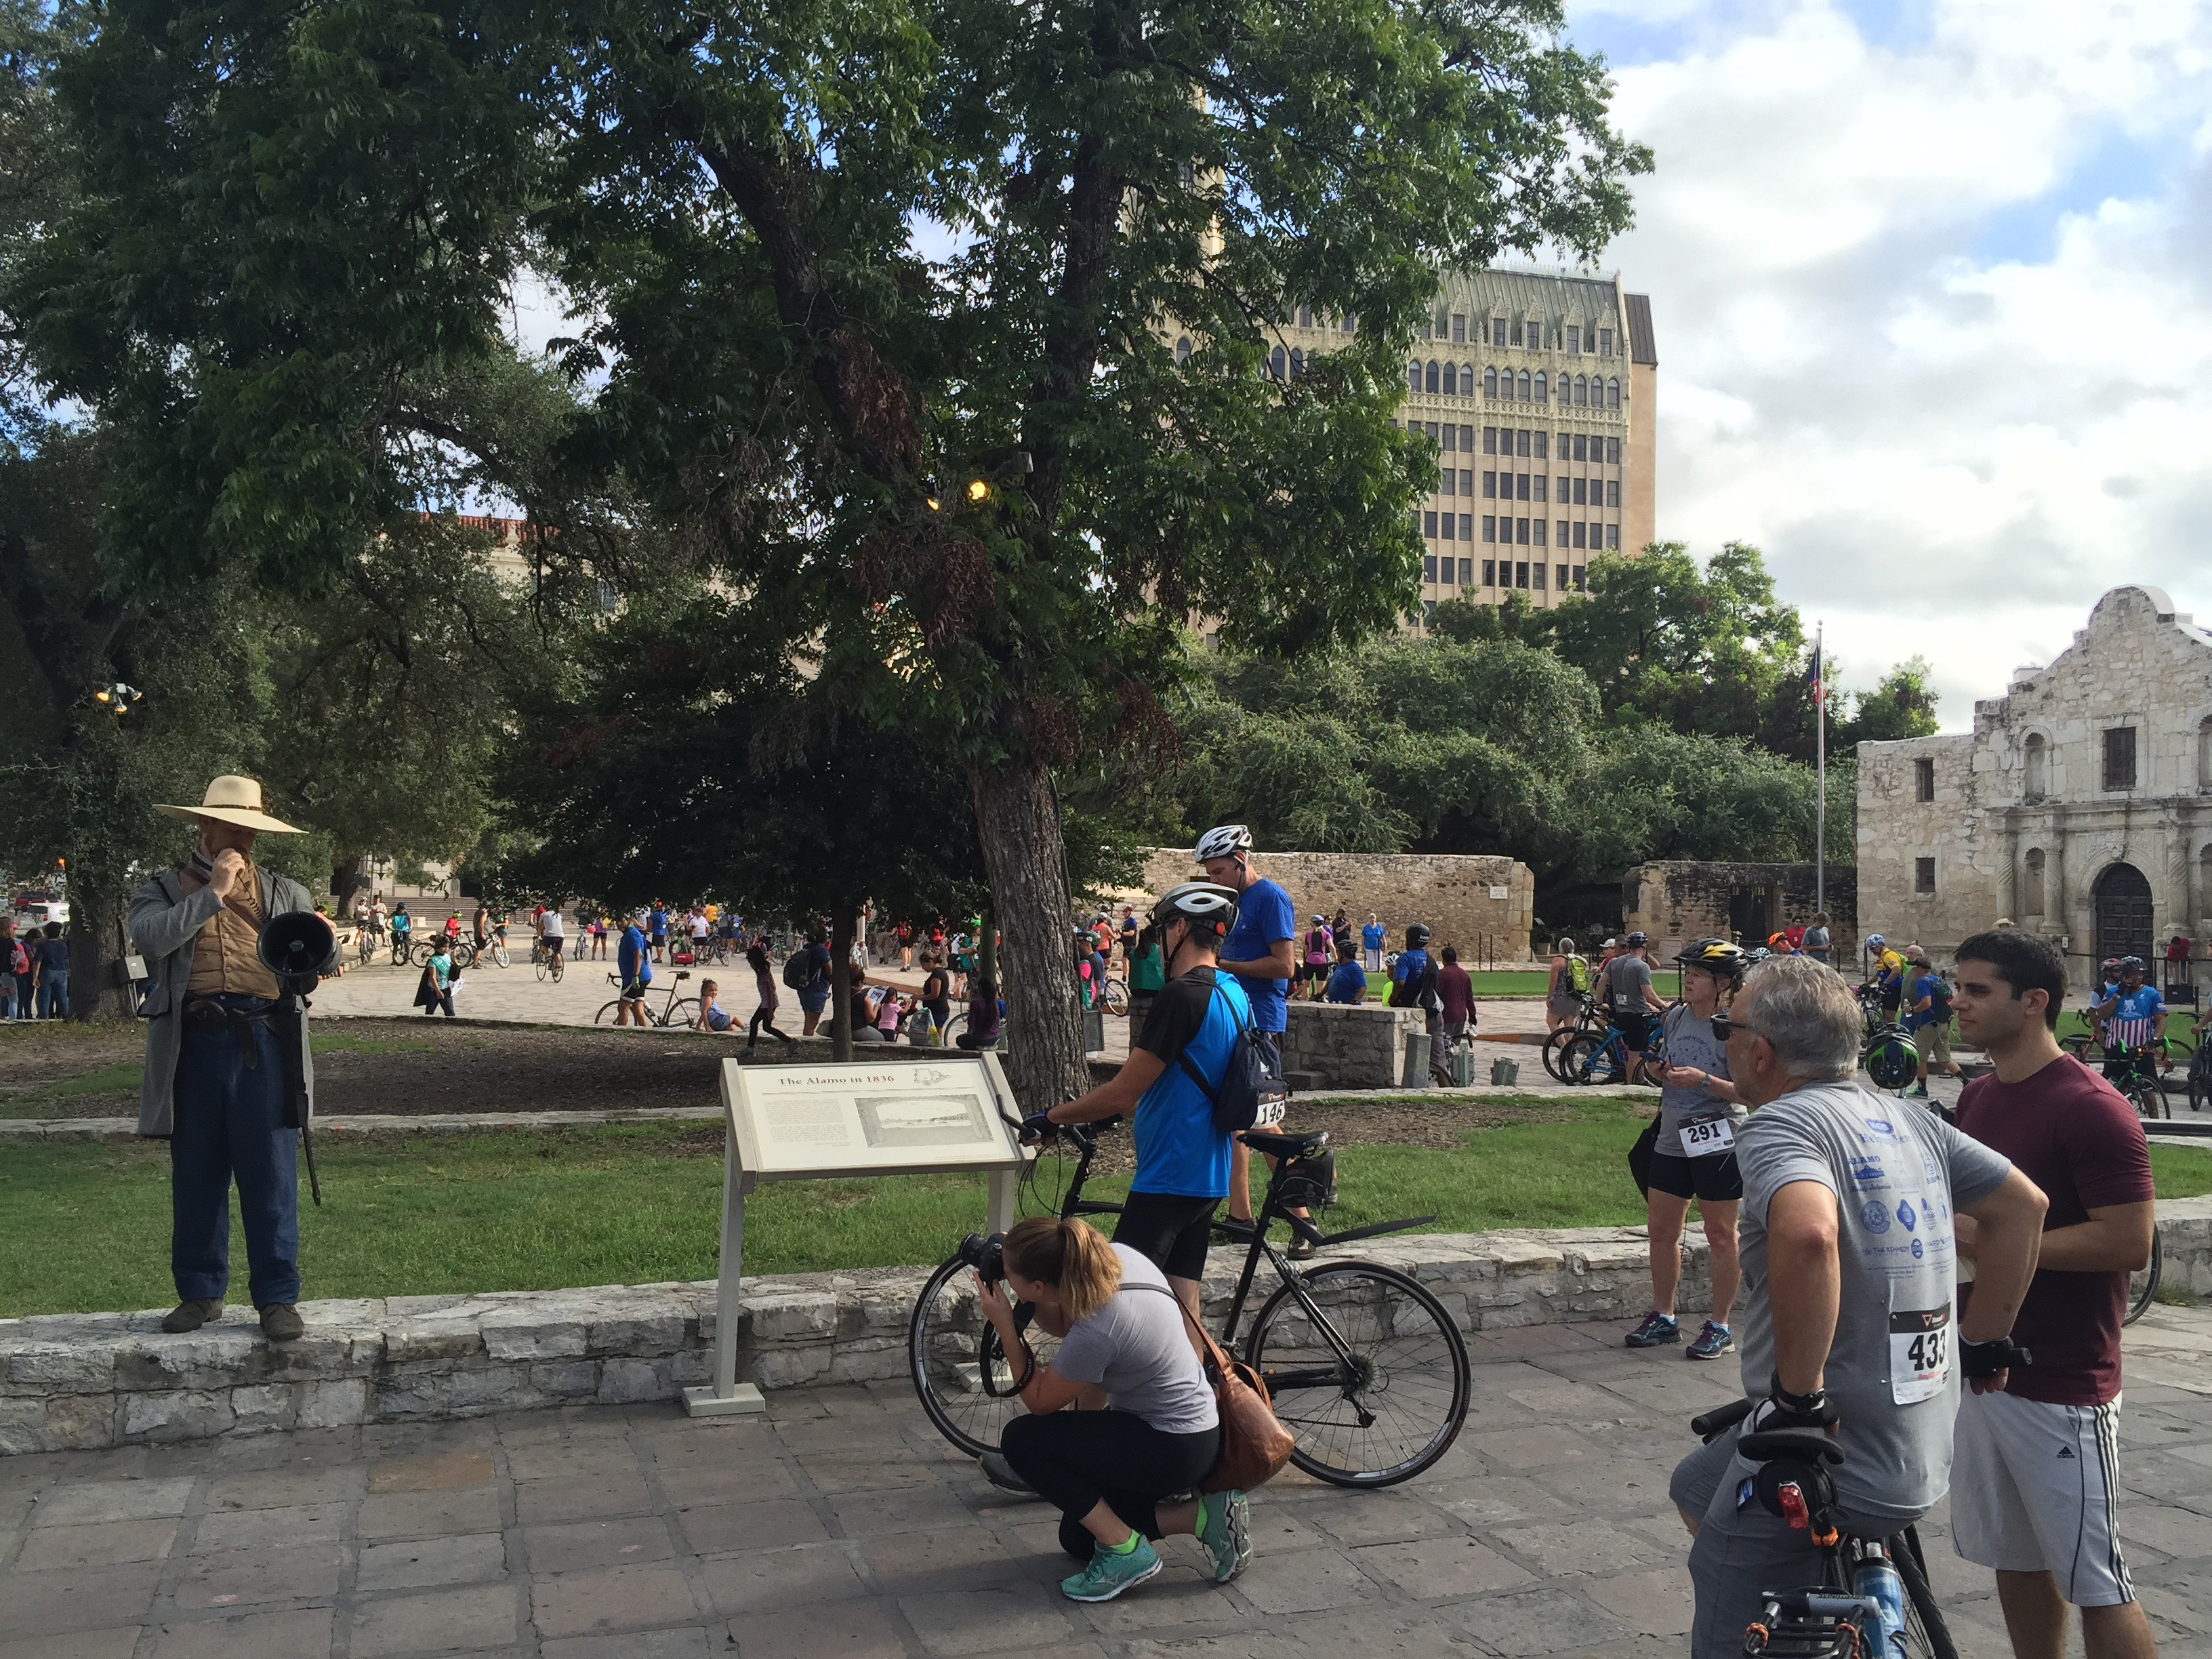 heritage ride at alamo.jpg